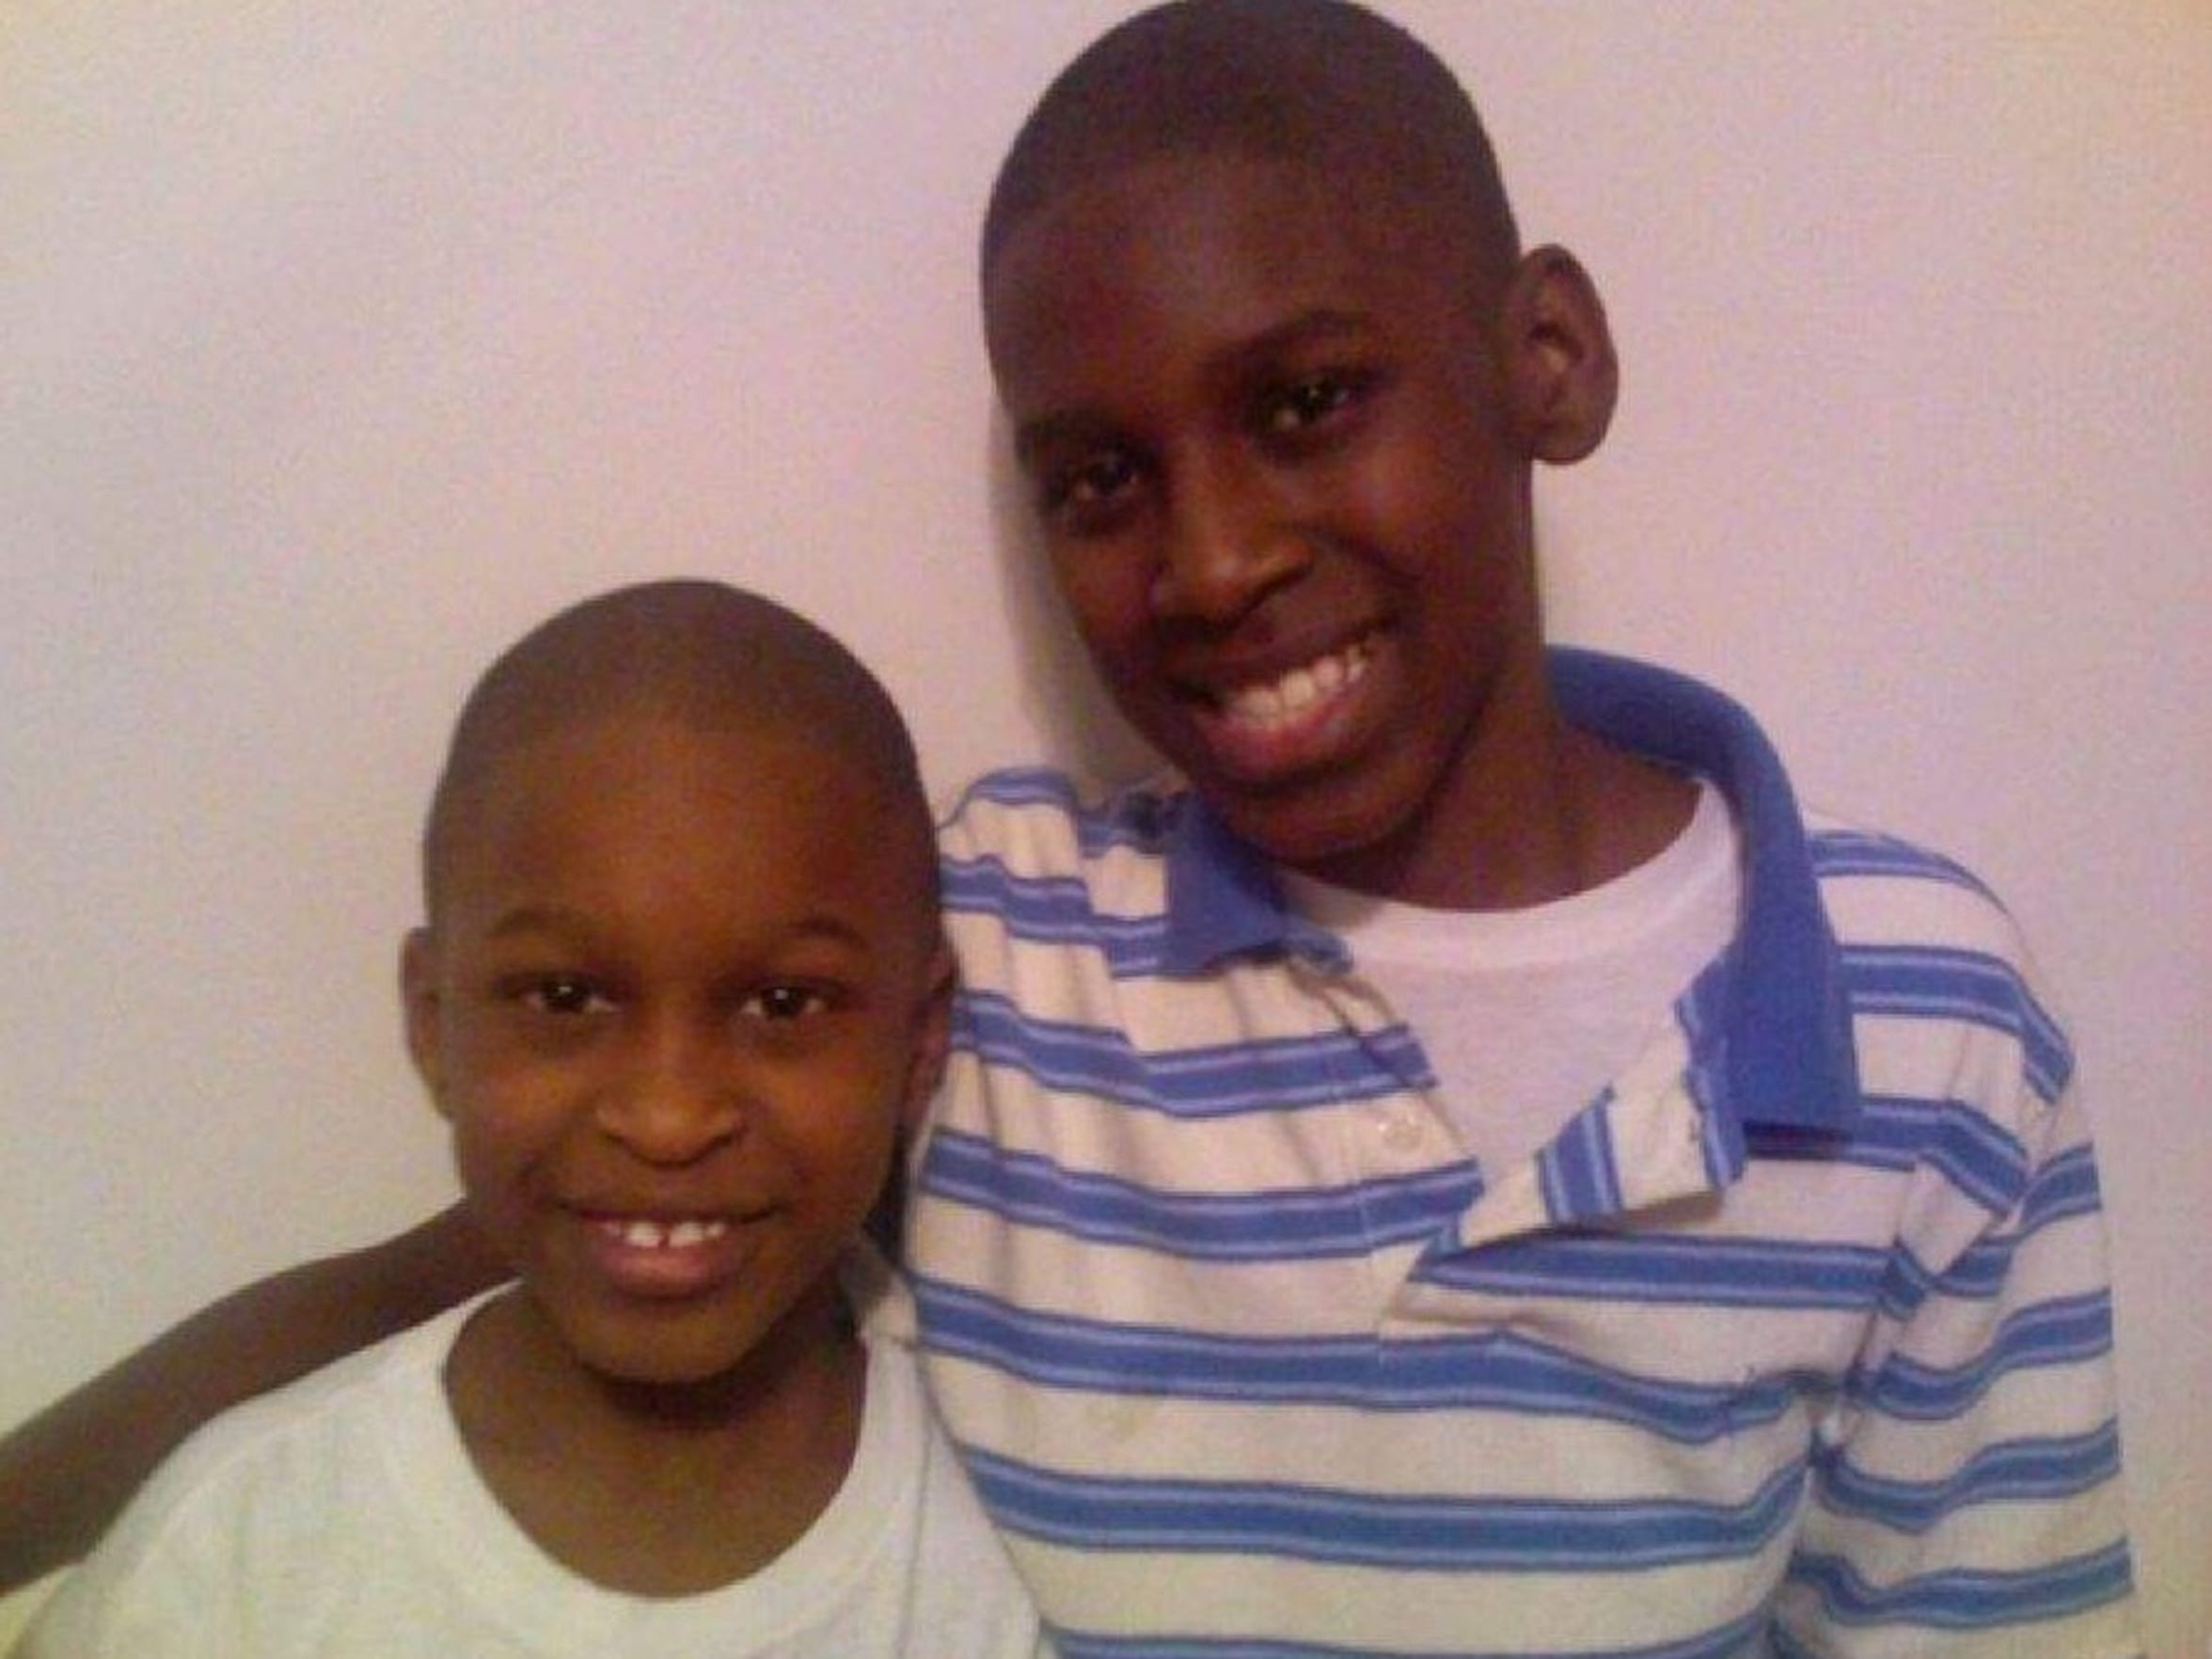 Jahlil and Na-Quan Lewis, shown here in an older photo, were both charged in the Only My Brothers gang indictment, but both they and their mother say they aren't gang members.